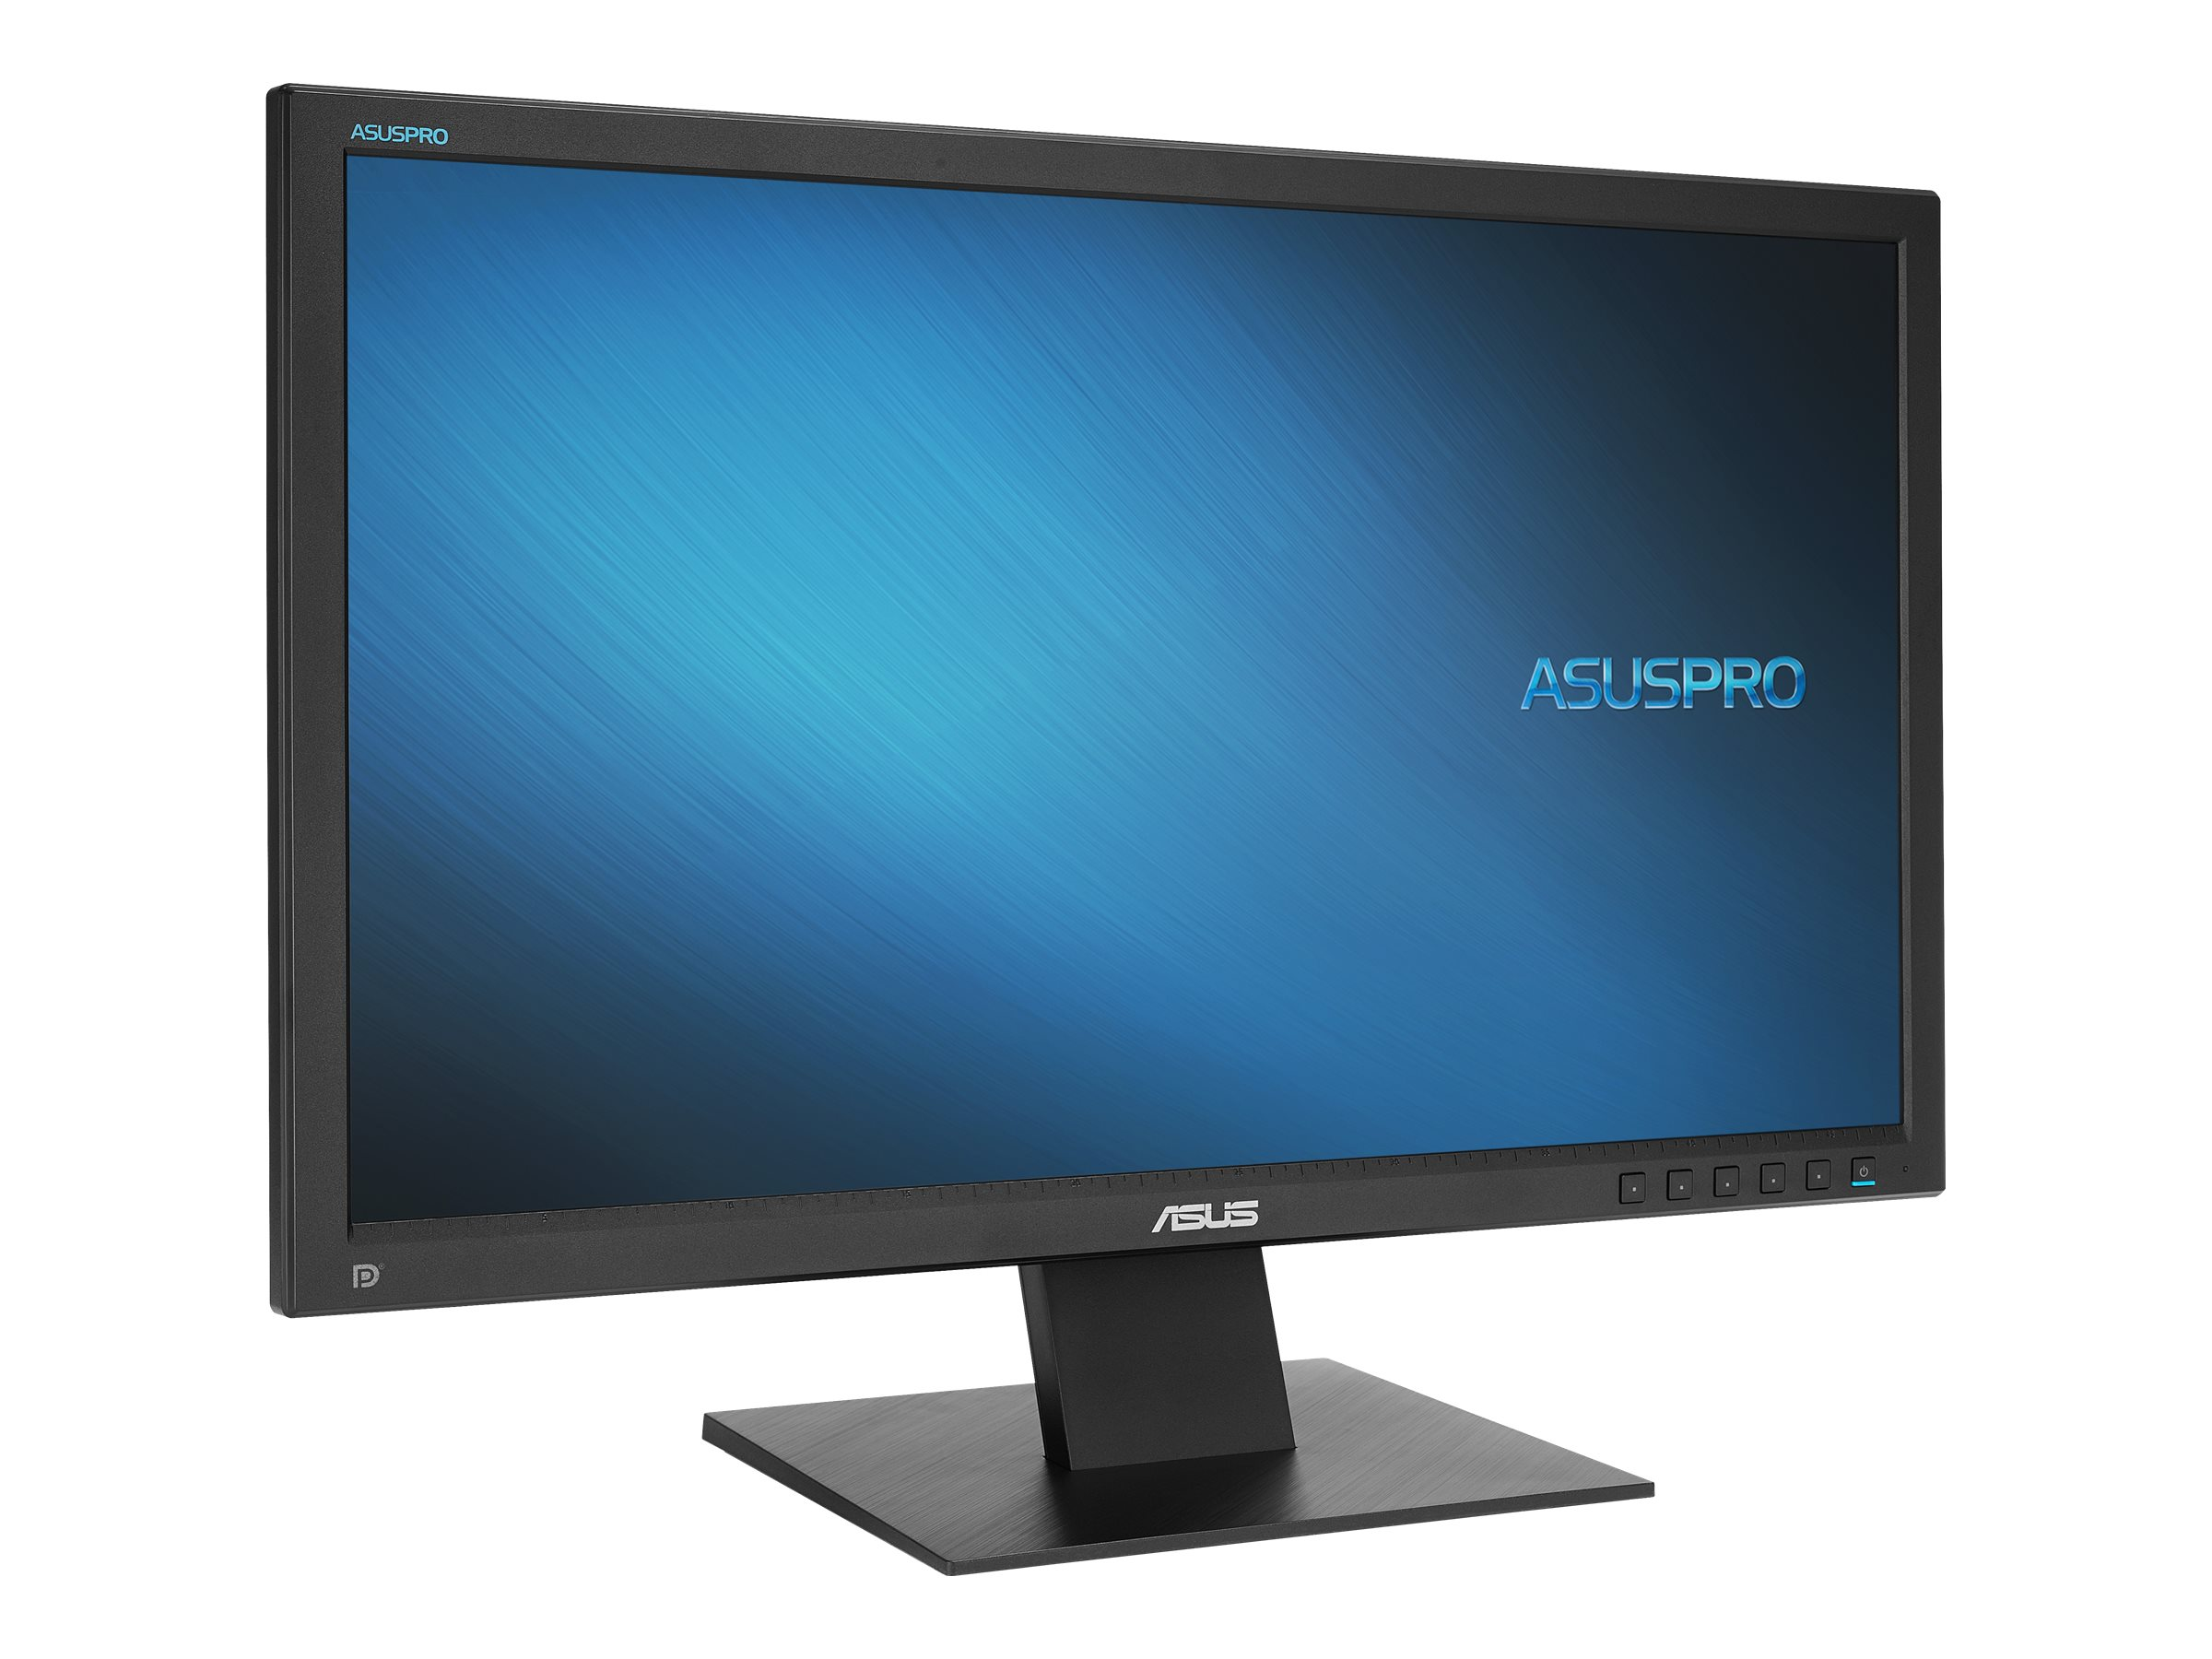 Asus 21.5 C422AQ Full HD LED-LCD Monitor, Black, C422AQ